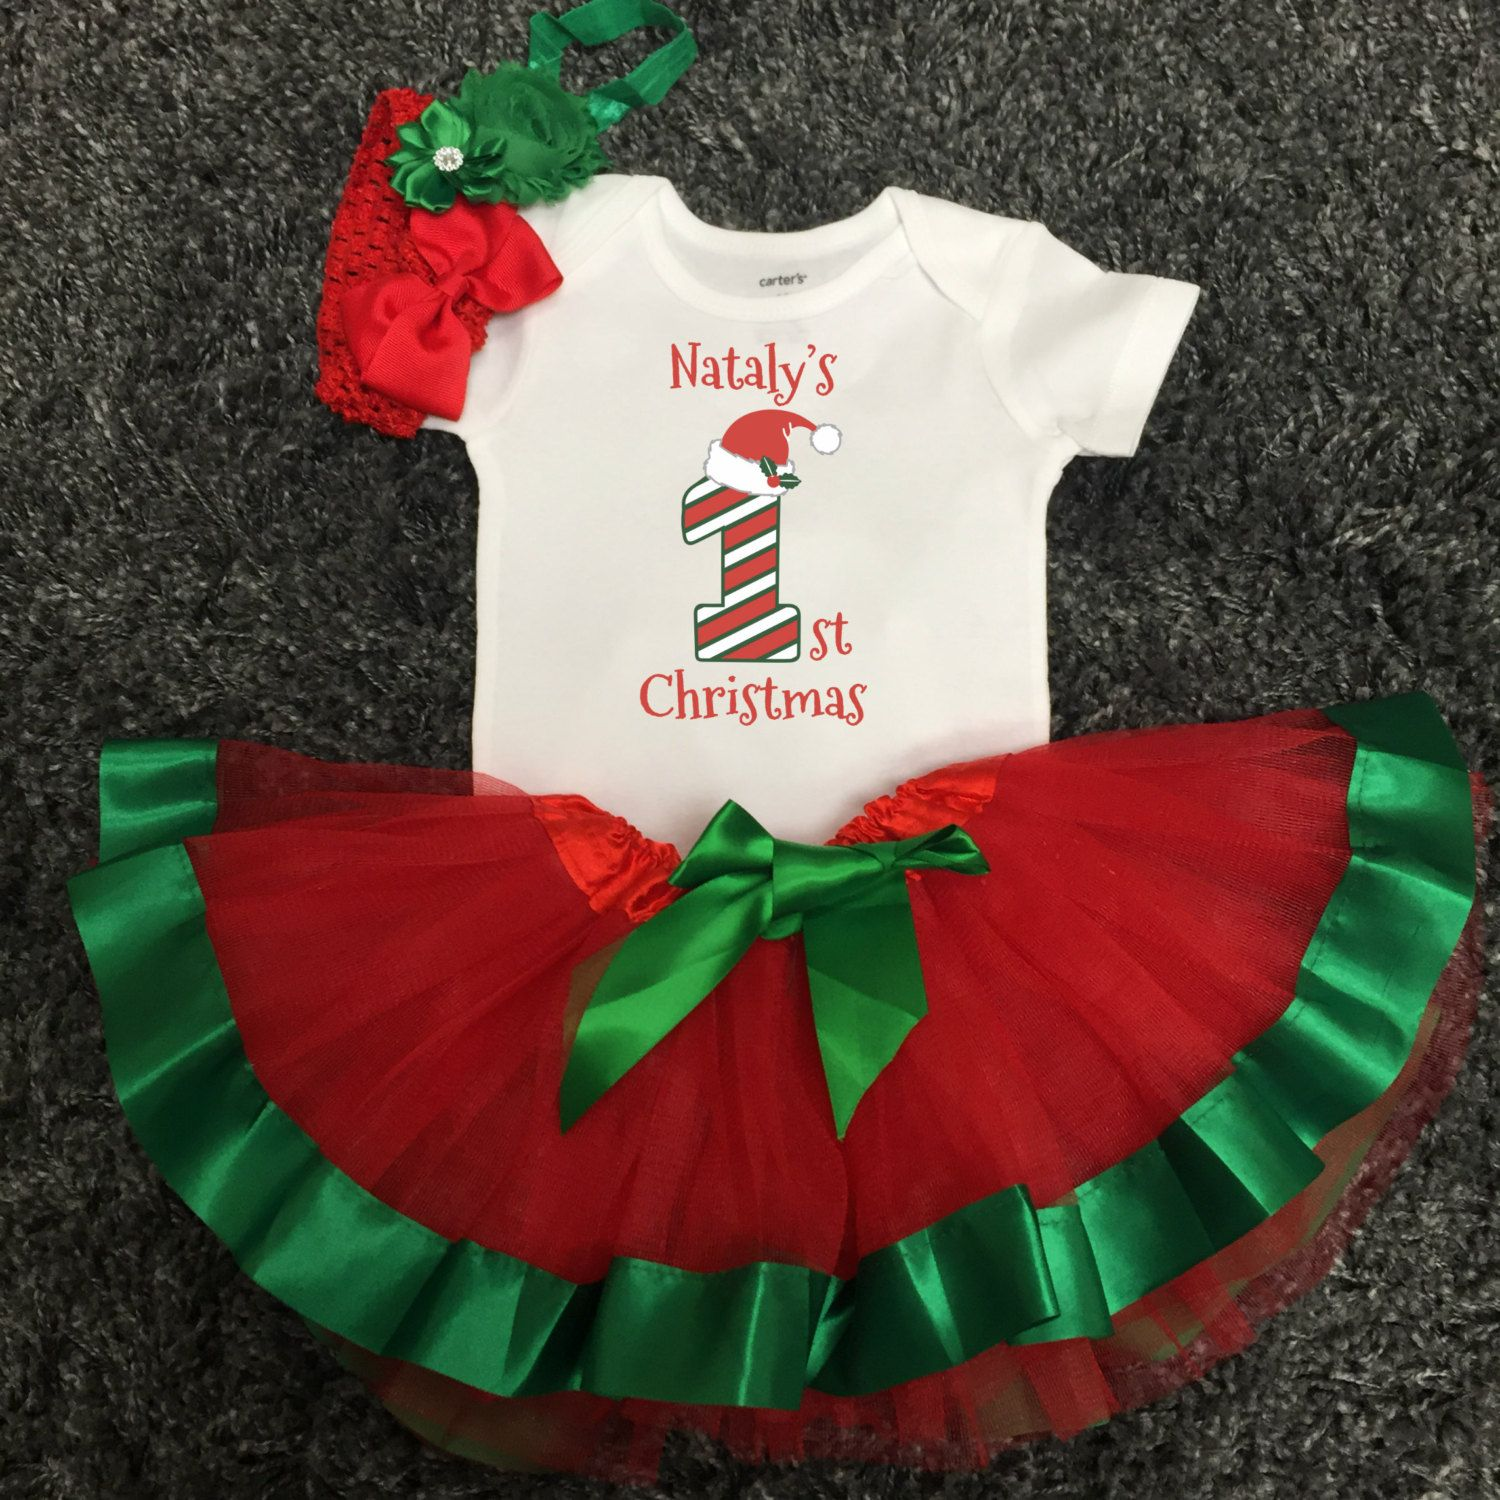 Babys first Christmas outfit